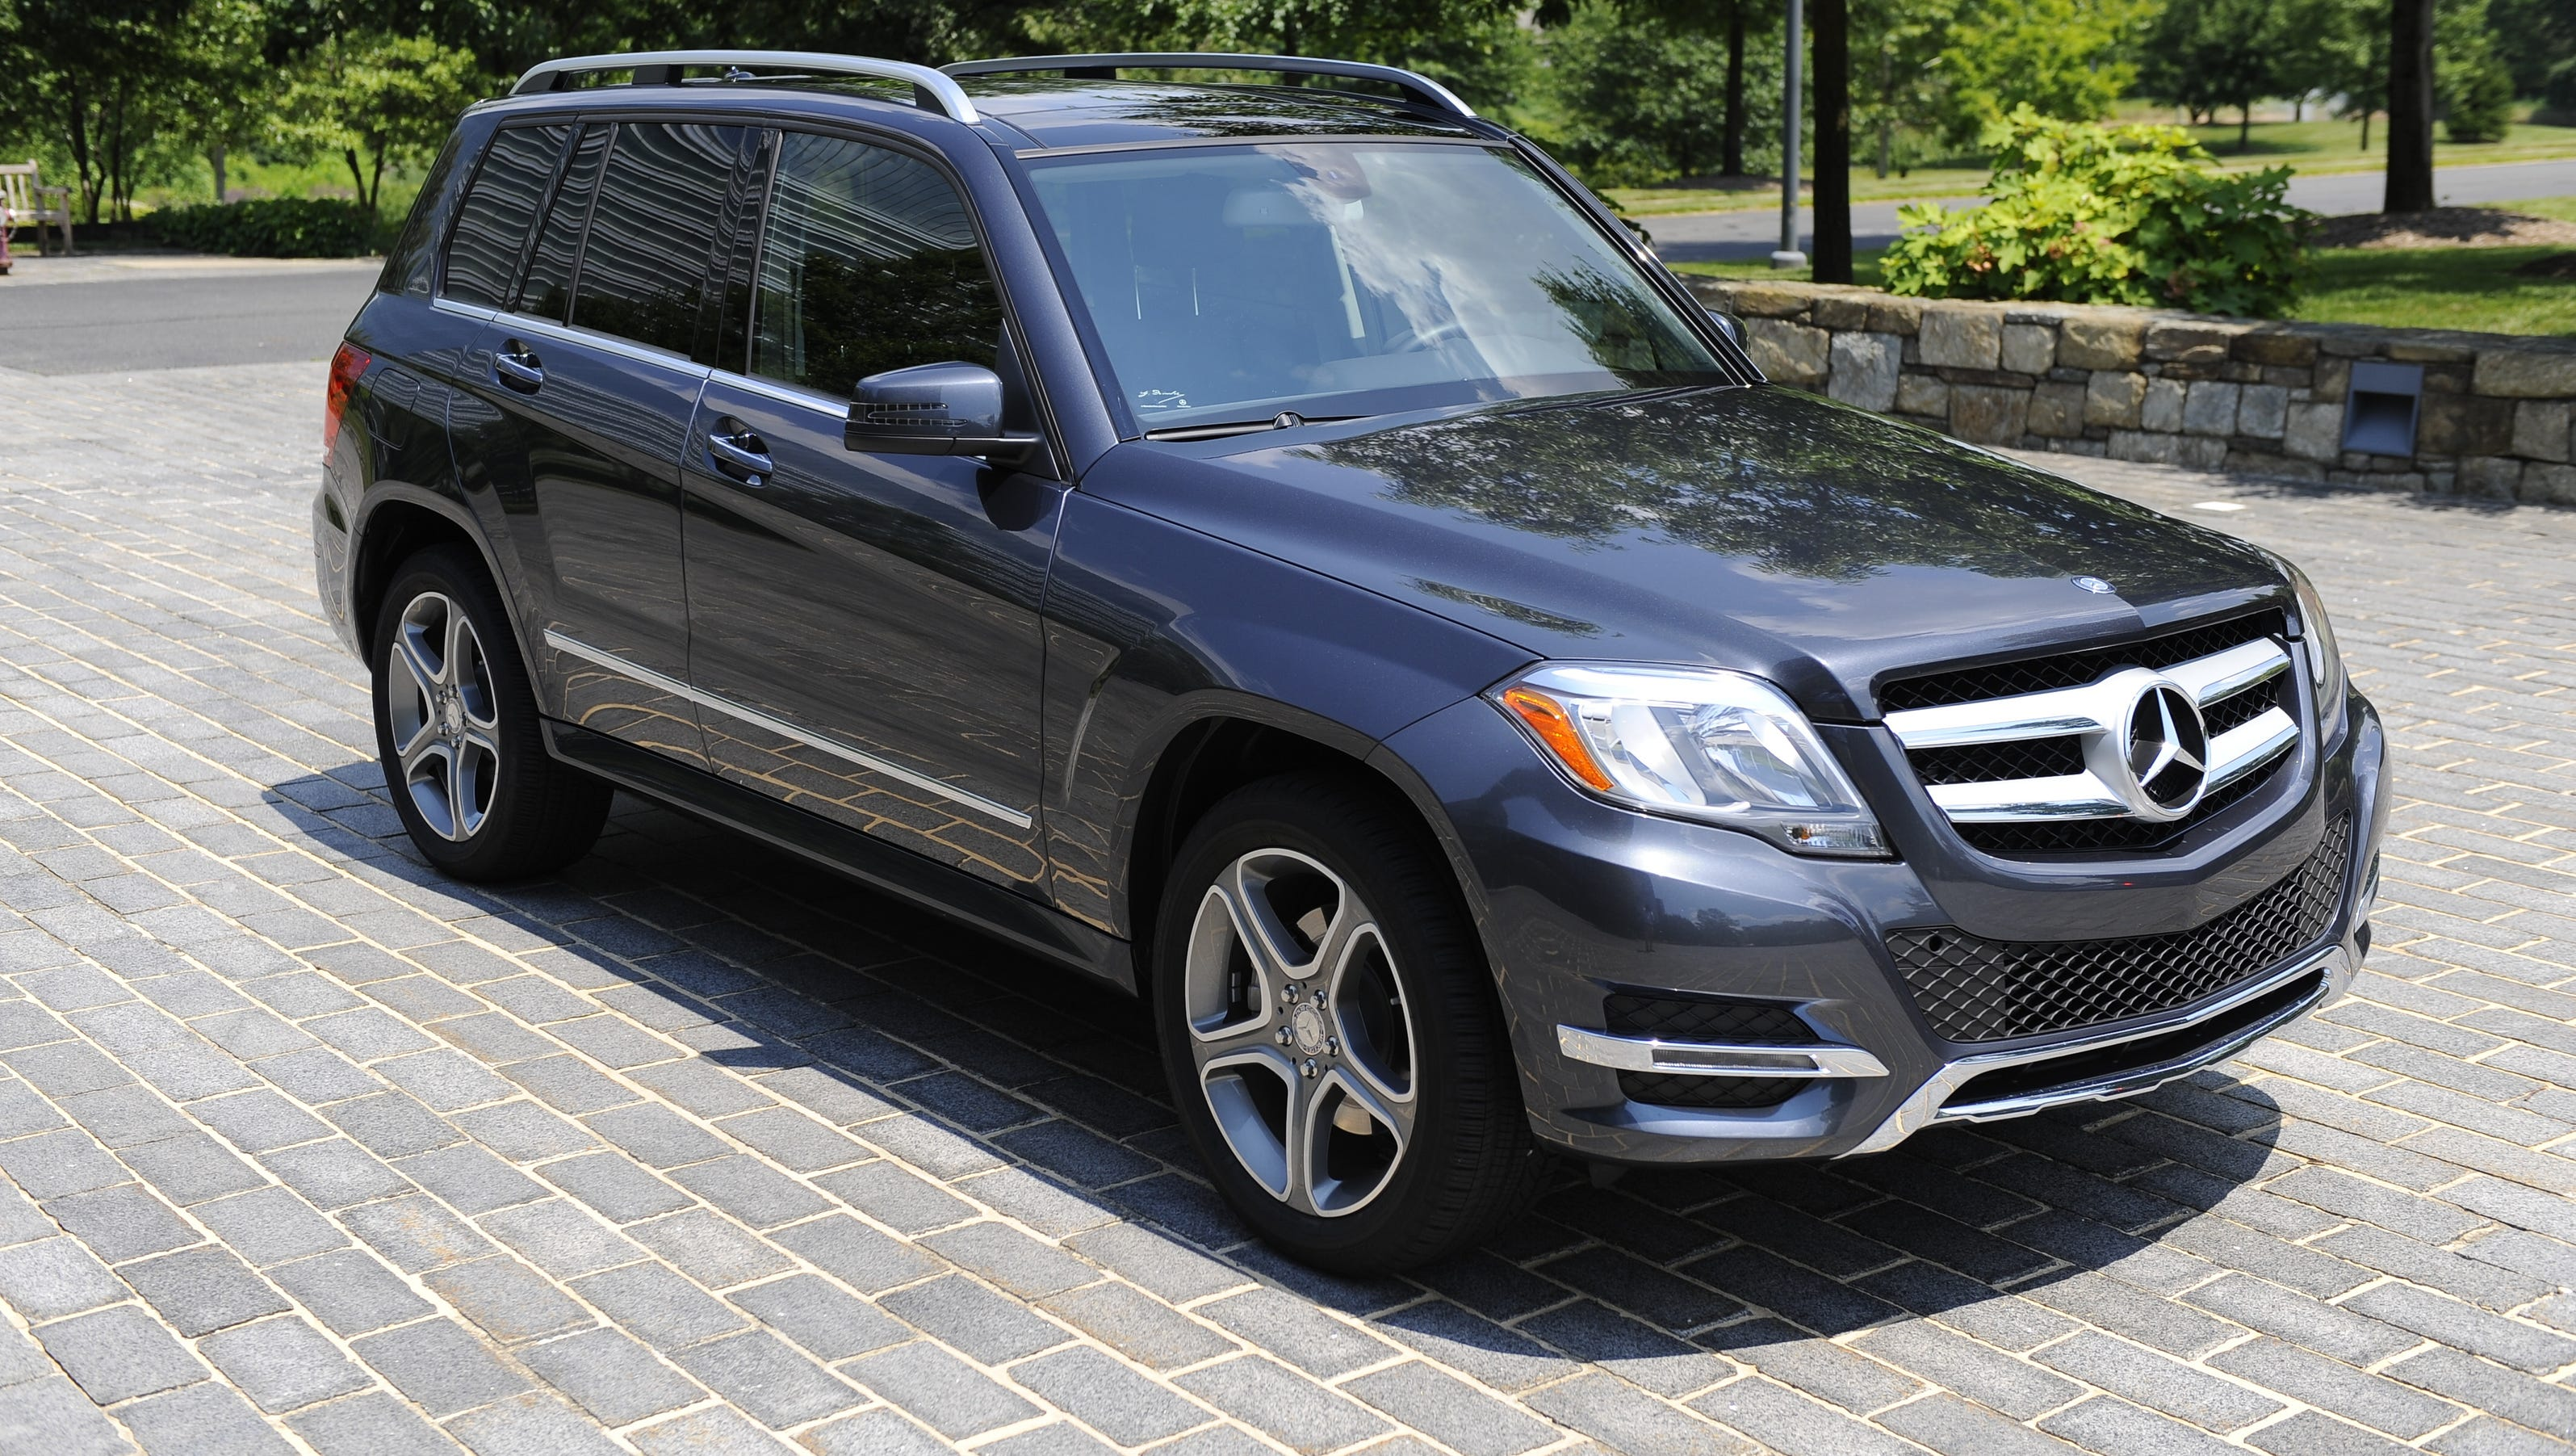 Used 2013 mercedes benz glk350 for sale carmax autos post for Used mercedes benz for sale in usa